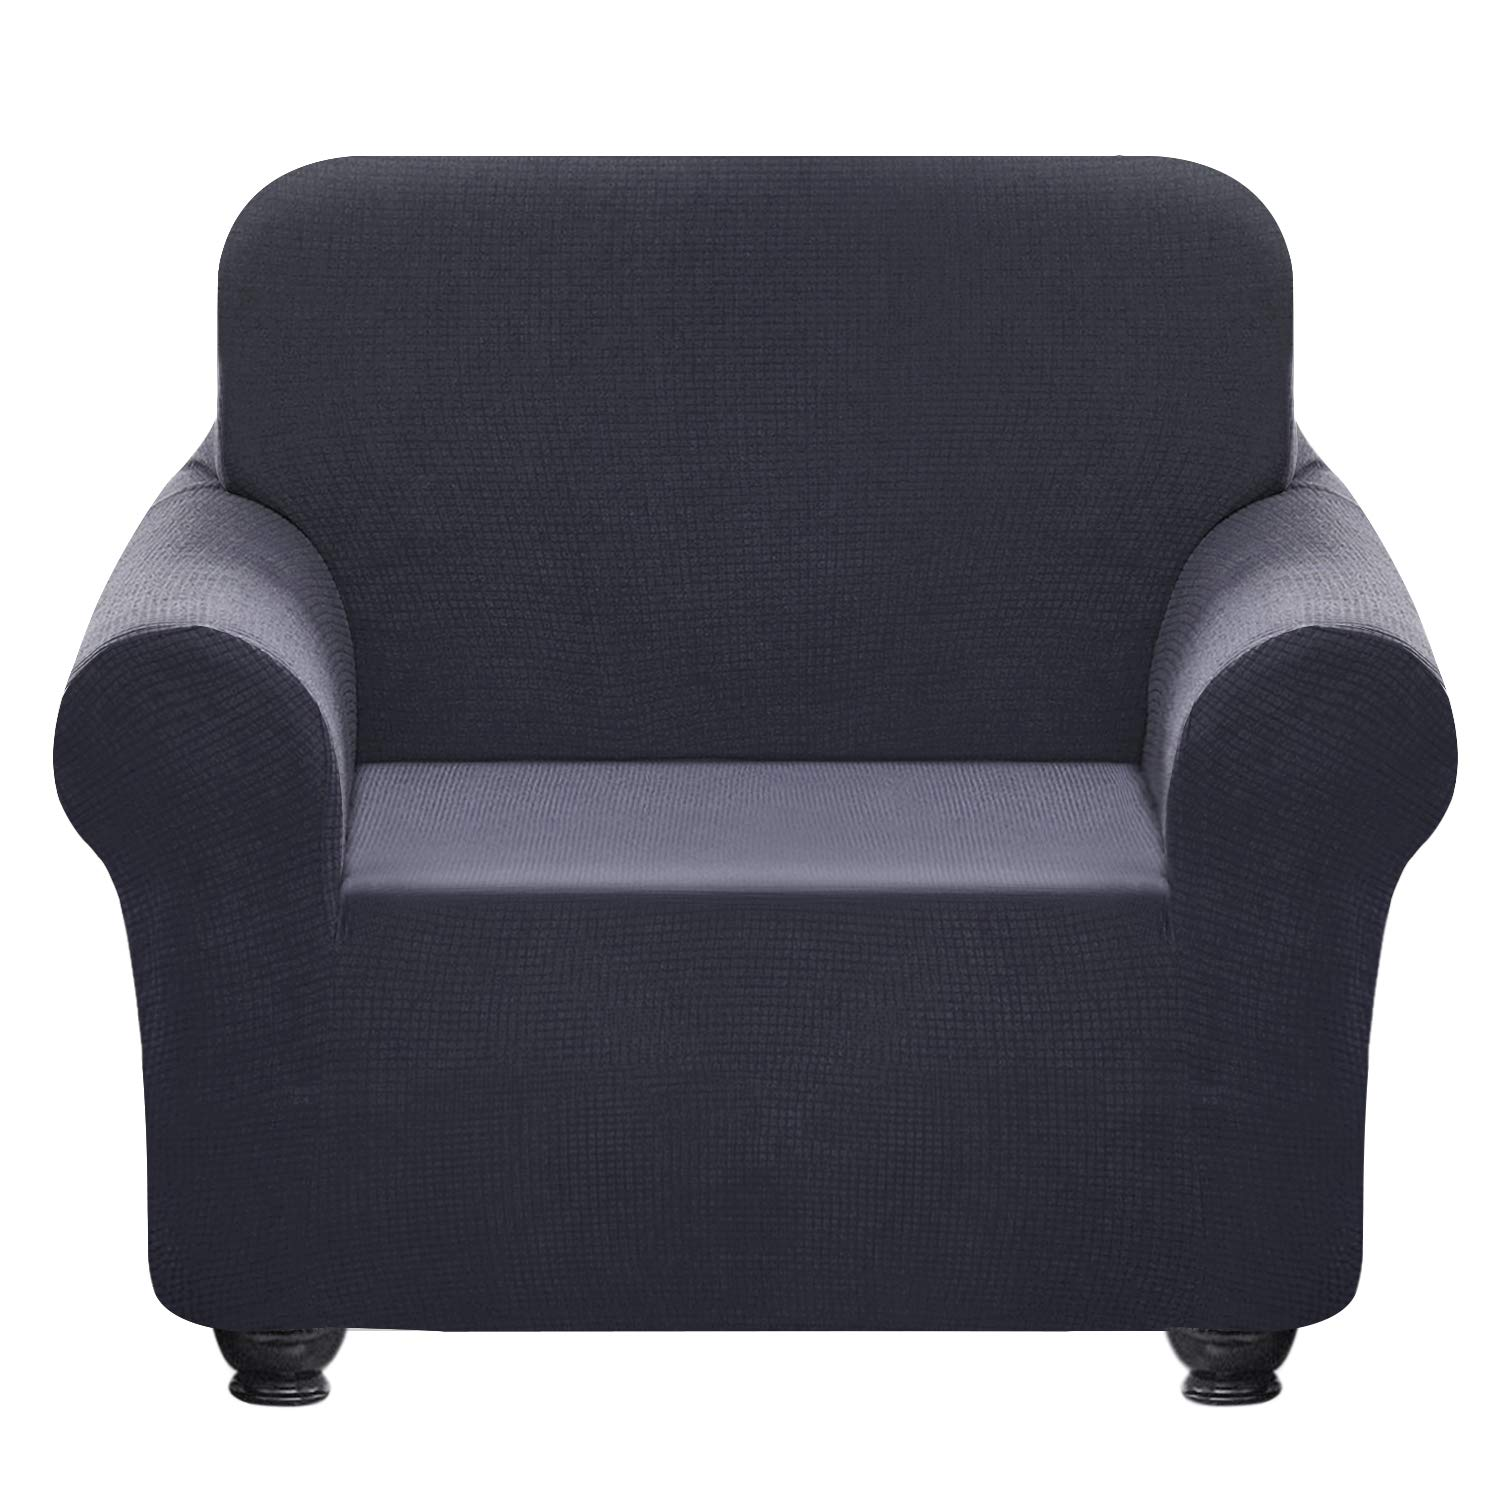 Chelzen Tech Chelzen Stretch Sofa Covers 1-Piece Polyester Spandex Fabric Living Room Couch Slipcovers Chair, Dark Gray